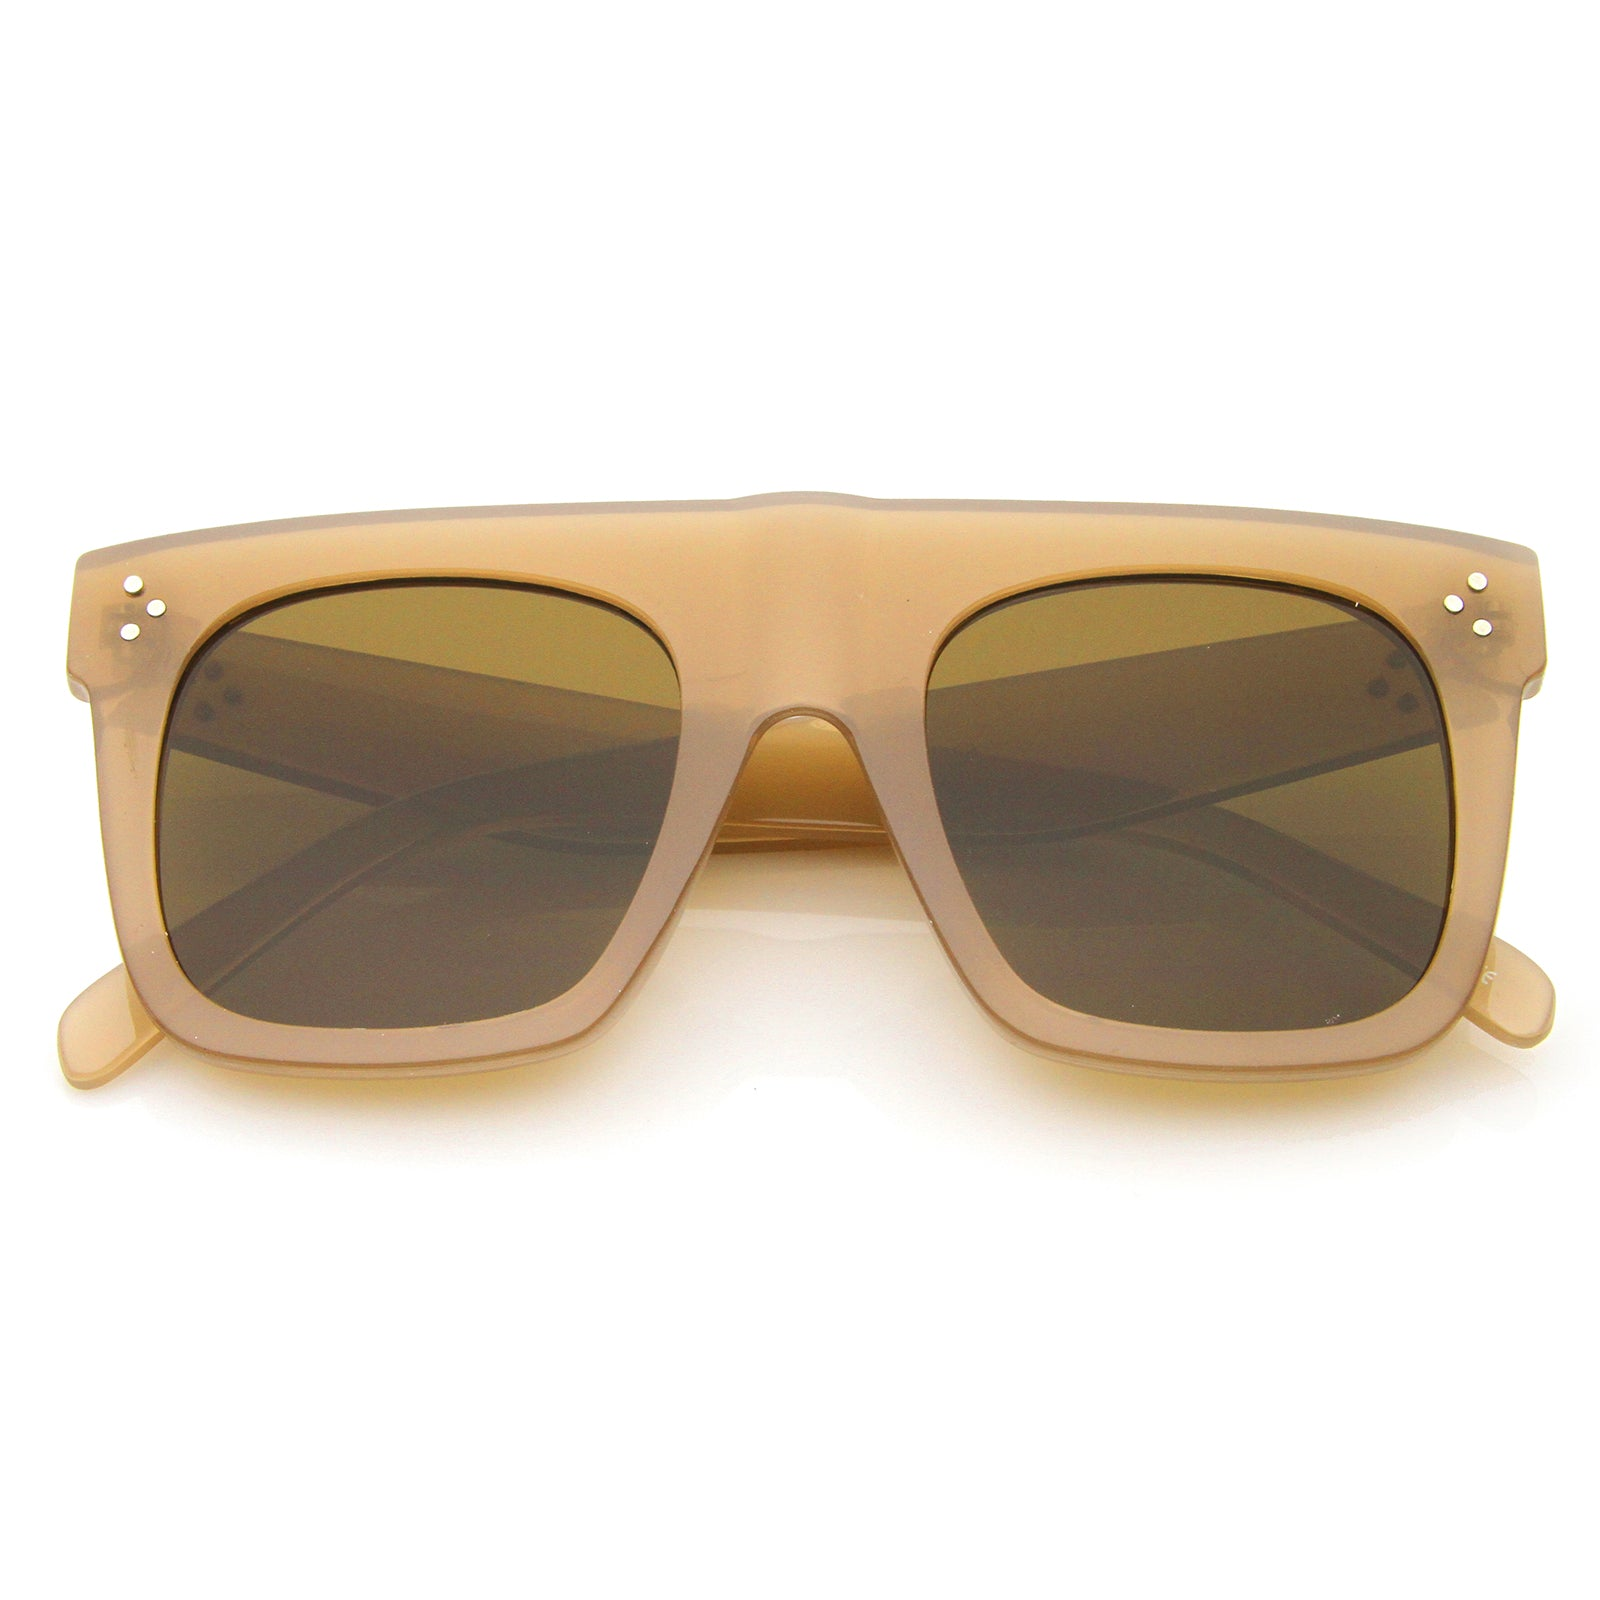 Modern Fashion Bold Flat Top Square Horn Rimmed Sunglasses 50mm - sunglass.la - 13